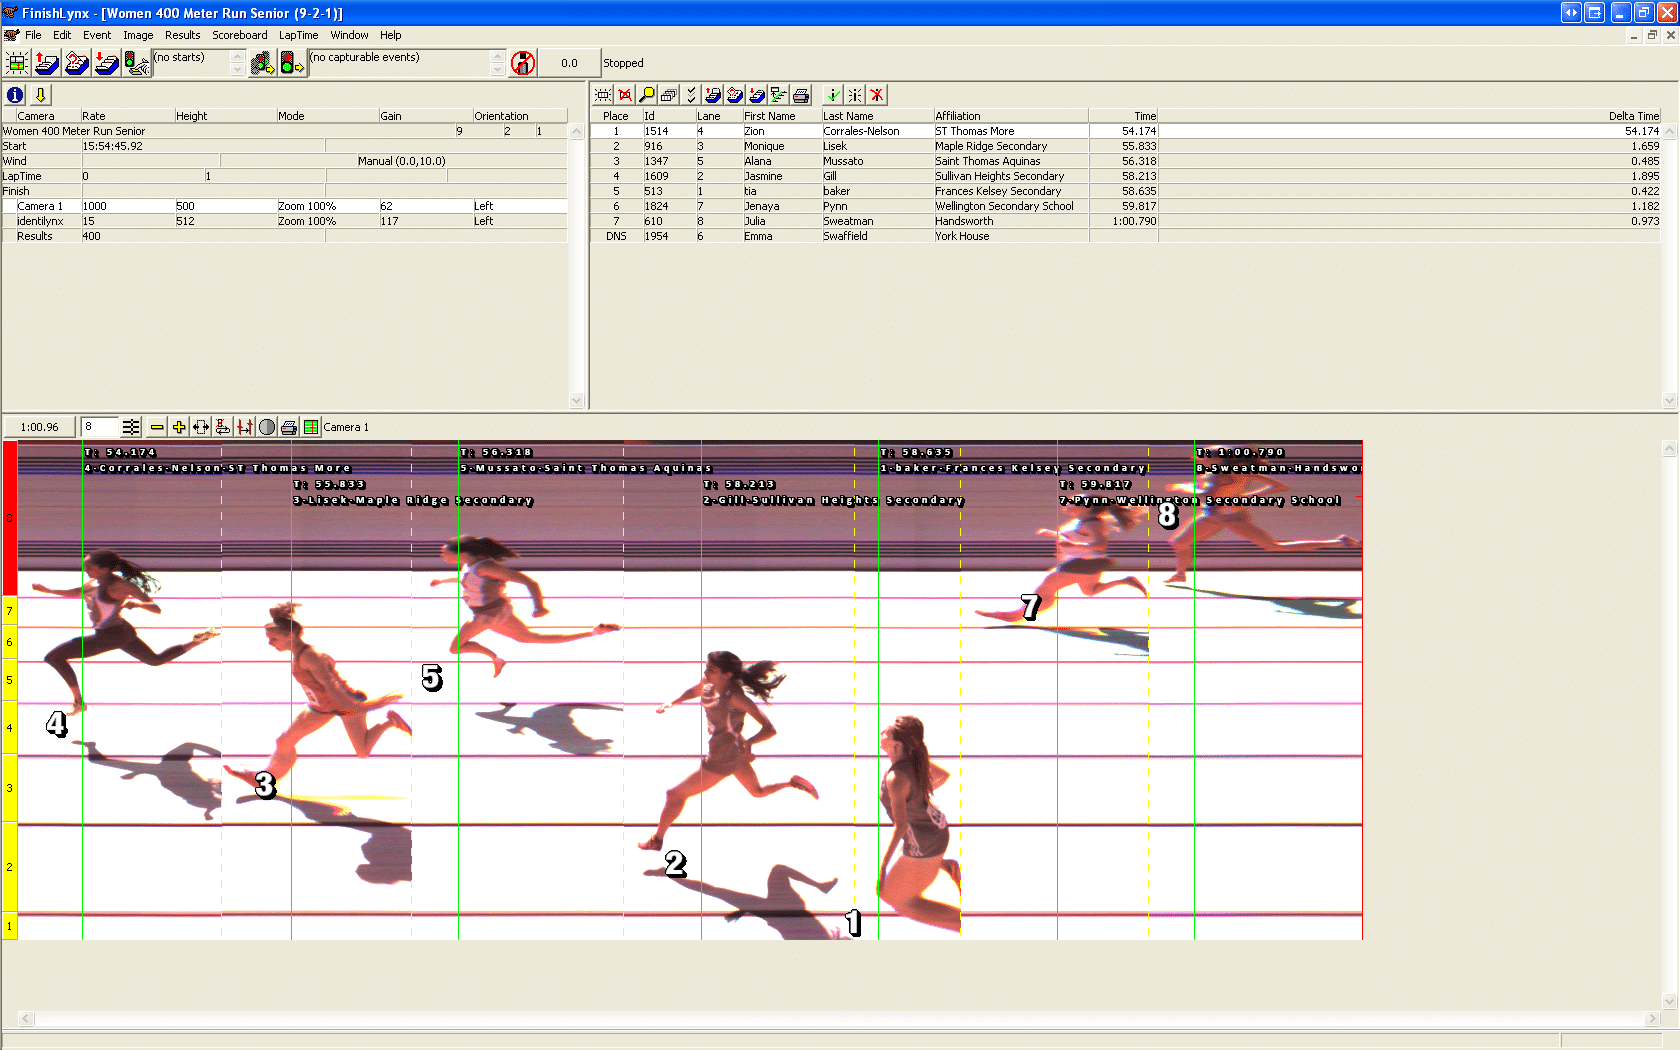 Photo Finish provided by Jason Swan Valley Royals Track & Field Club